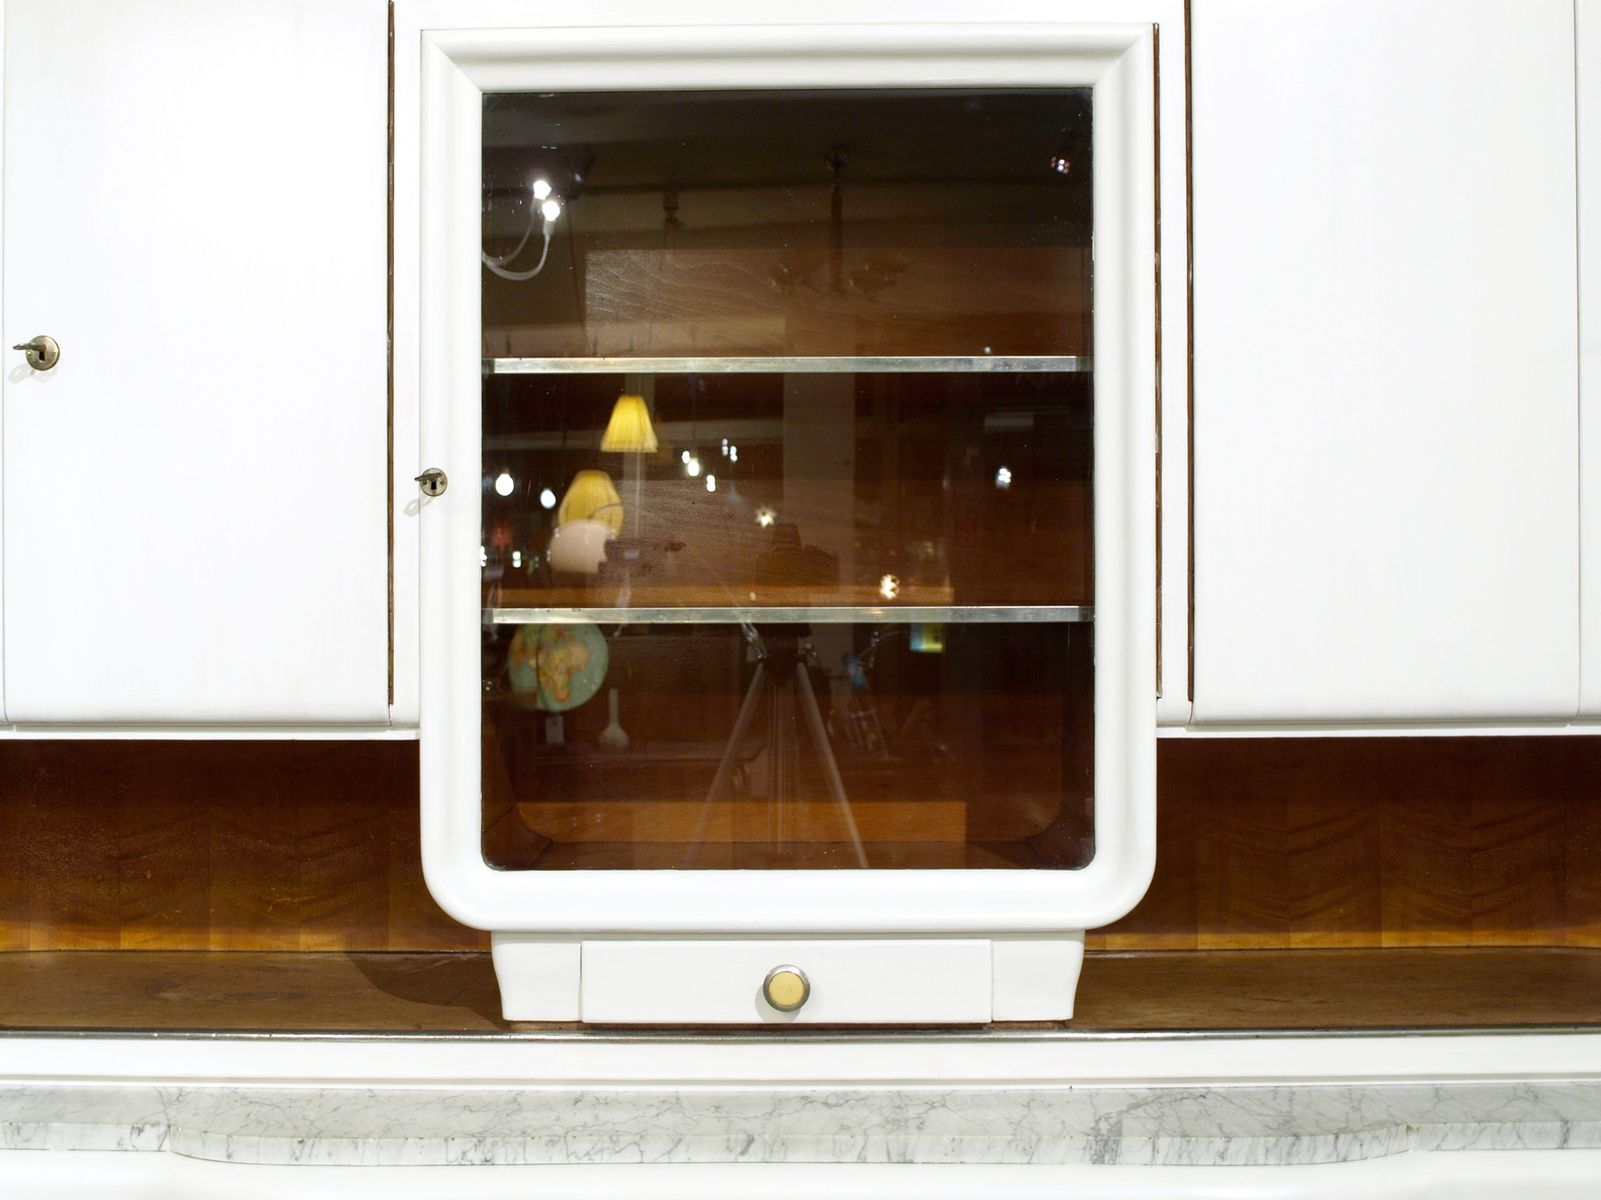 vintage kitchen cabinet by niestrath 1930s for sale at pamono vintage kitchen cabinet aud 250 00 picclick au